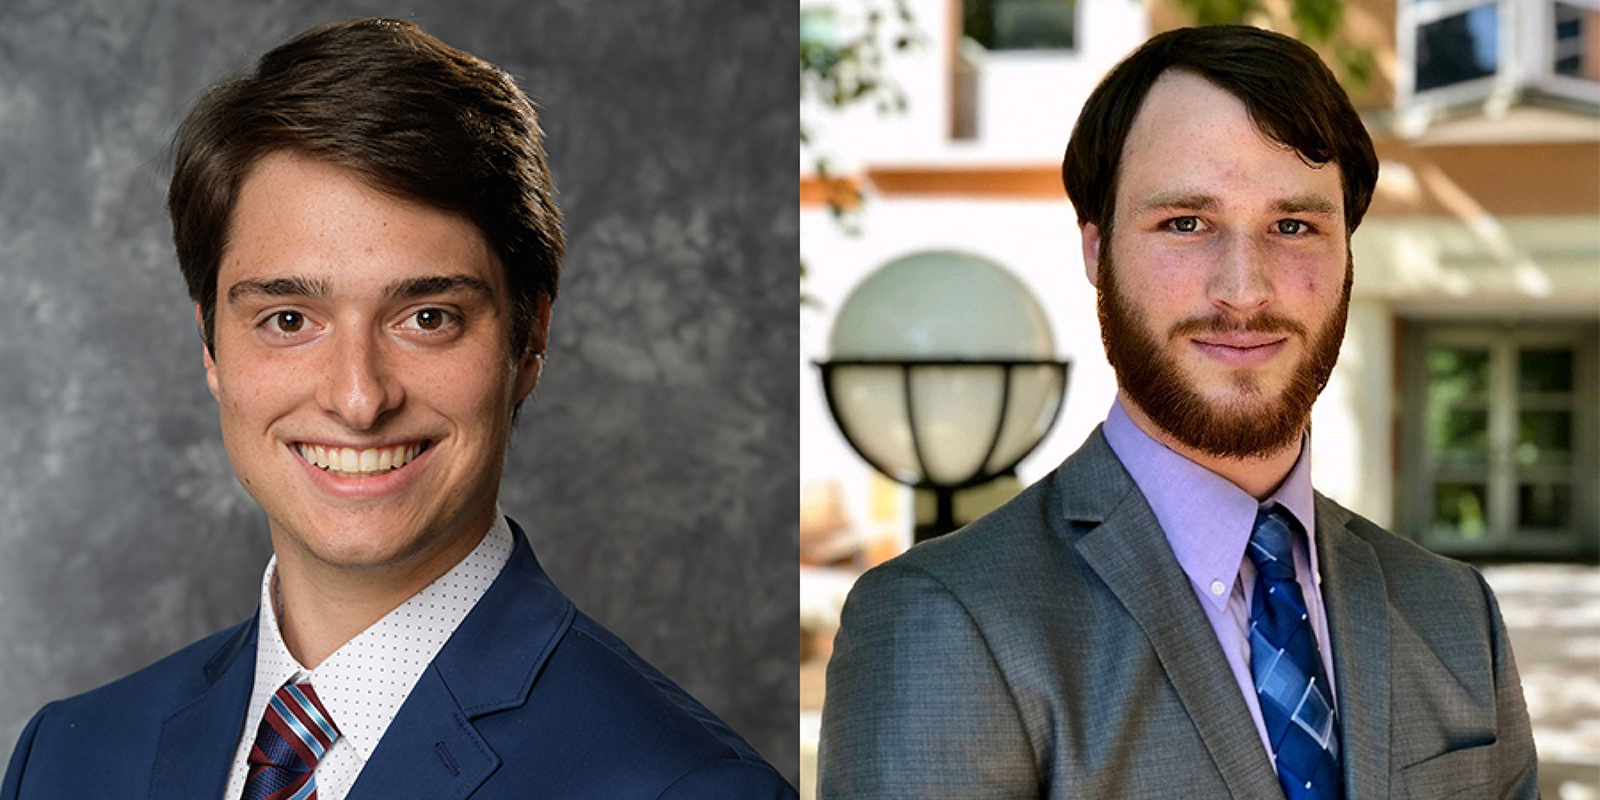 Kennesaw State Finance Graduates Nicholas Busson and Vinny Rosamilia